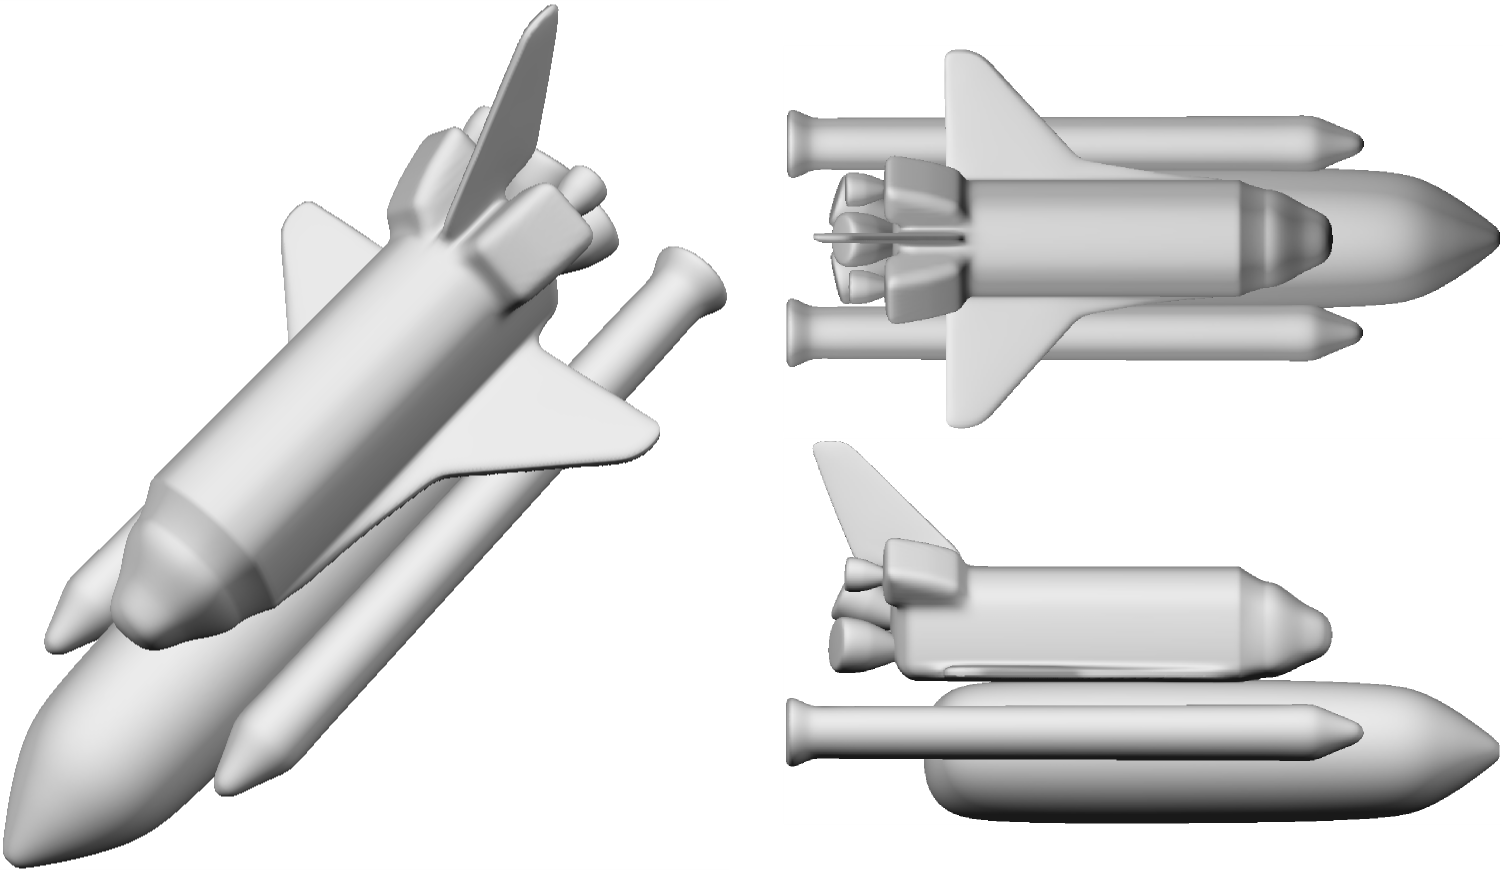 A Space Shuttle modeled with blended implicit sweeps